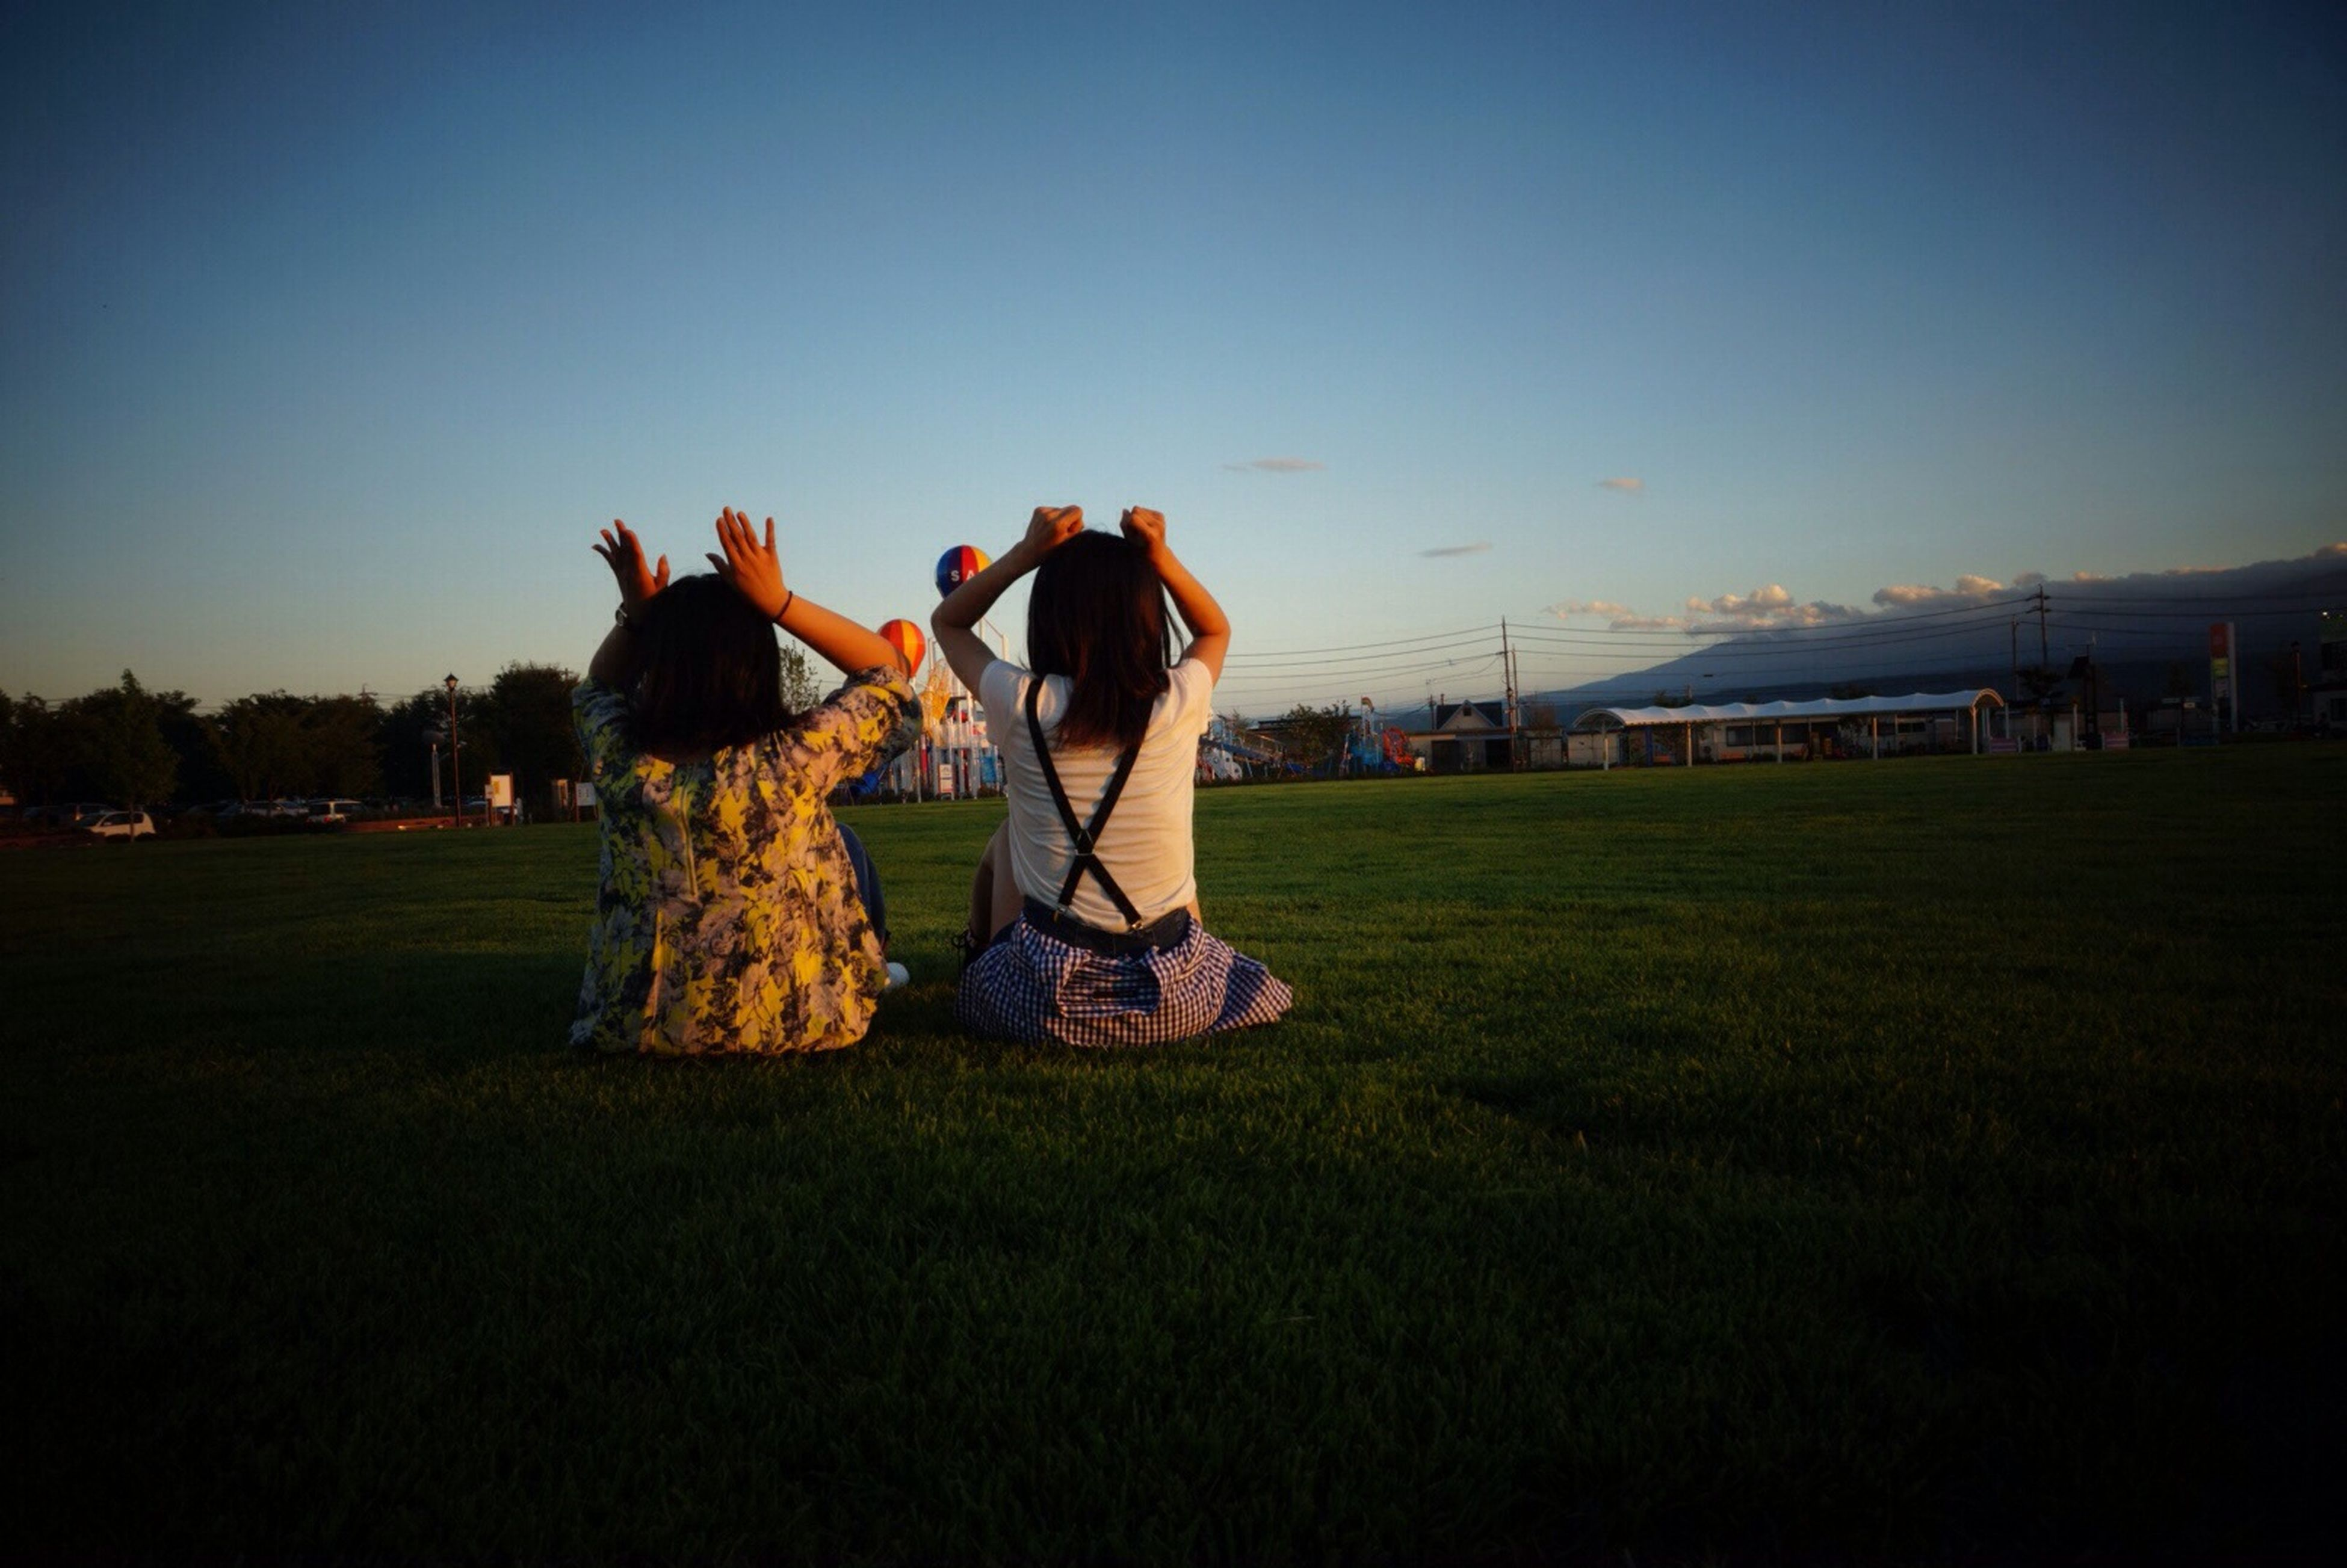 lifestyles, leisure activity, men, grass, field, enjoyment, clear sky, sport, large group of people, copy space, fun, person, togetherness, playing, full length, arts culture and entertainment, landscape, grassy, standing